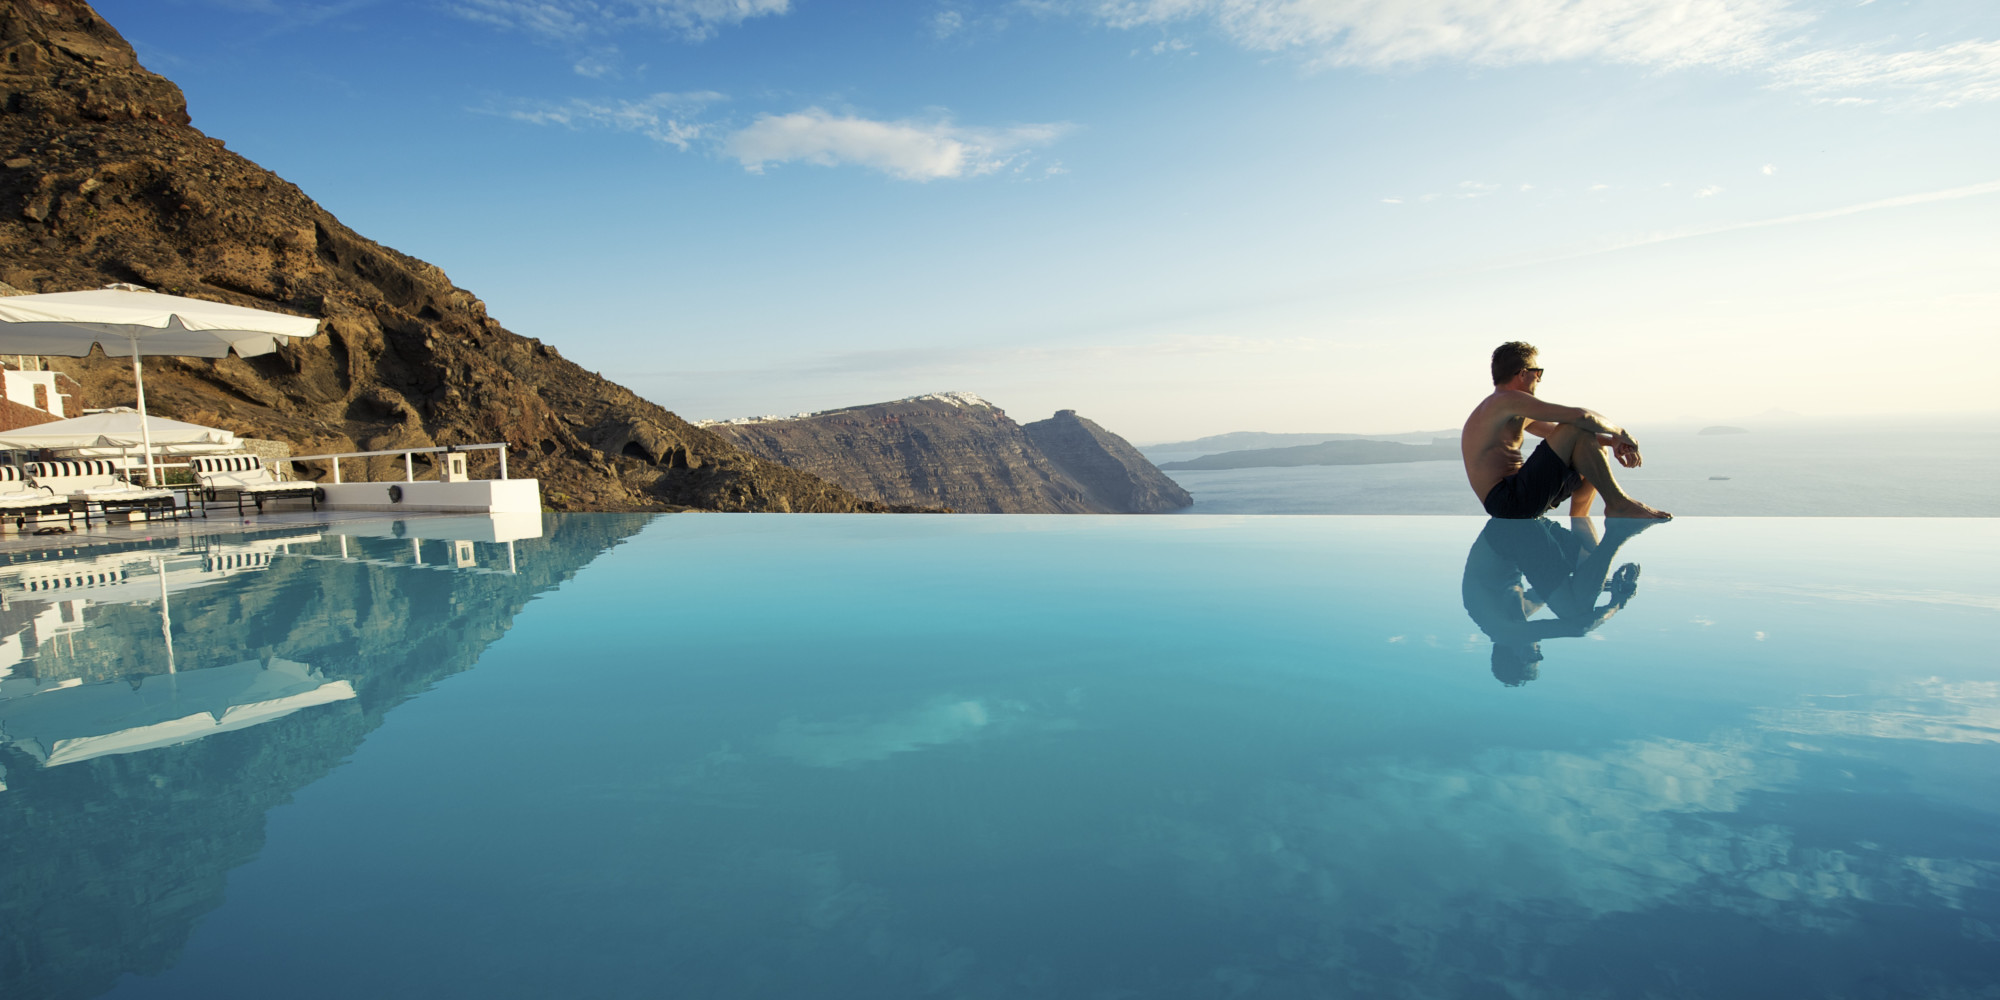 Infinity Pool 8 Infinity Pools You Have To See To Believe  Huffpost